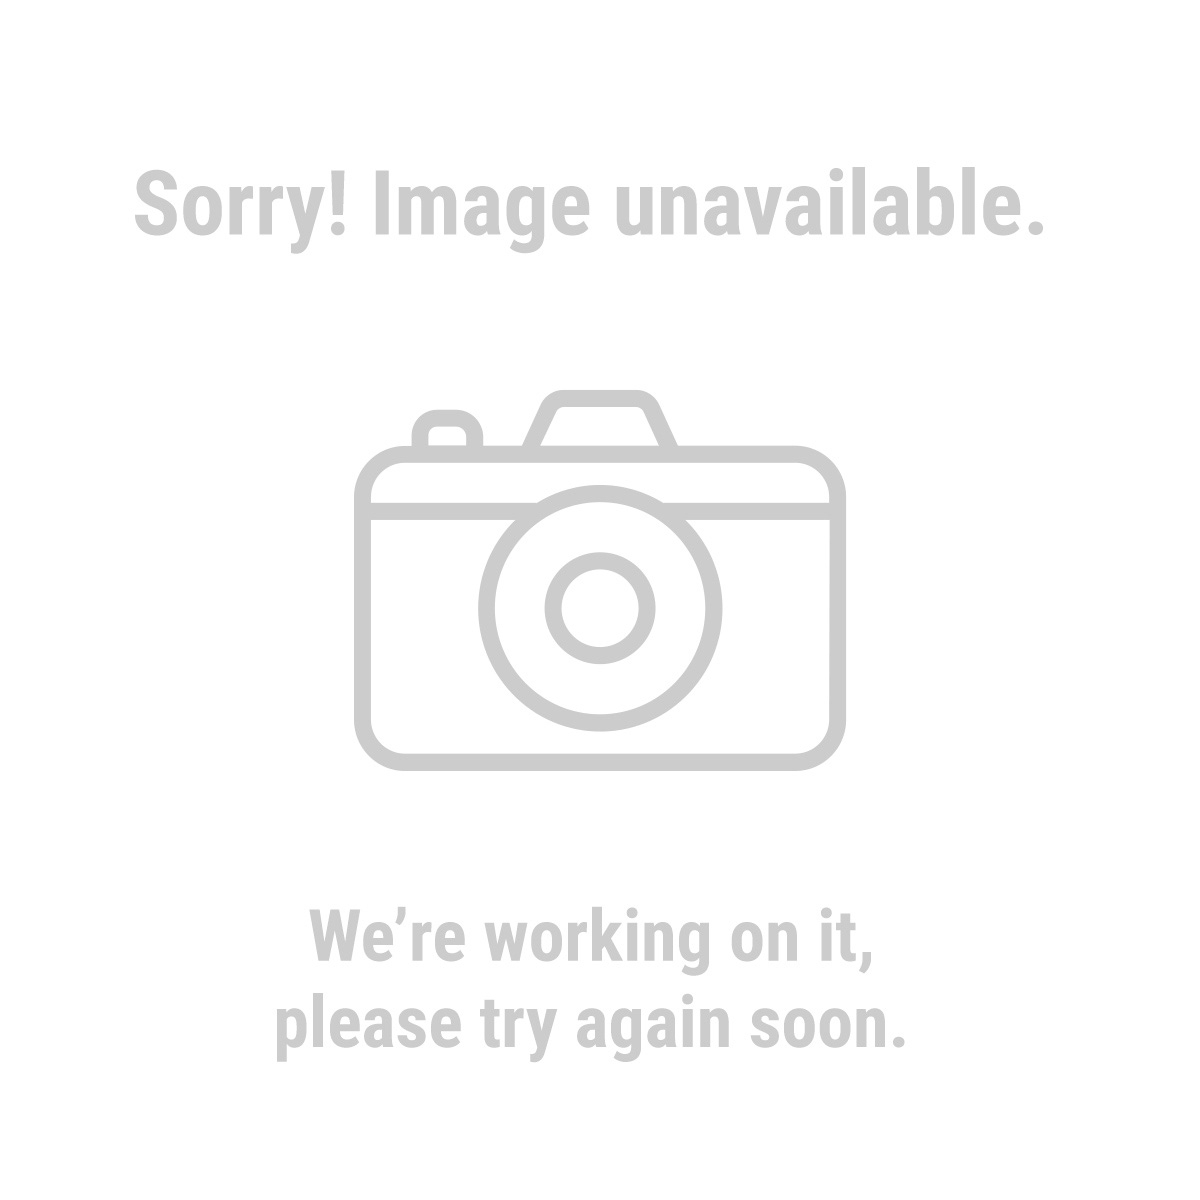 HFT 60443 8 ft. 6 in. x 11 ft. 4 in. Reflective Heavy Duty Silver Tarp